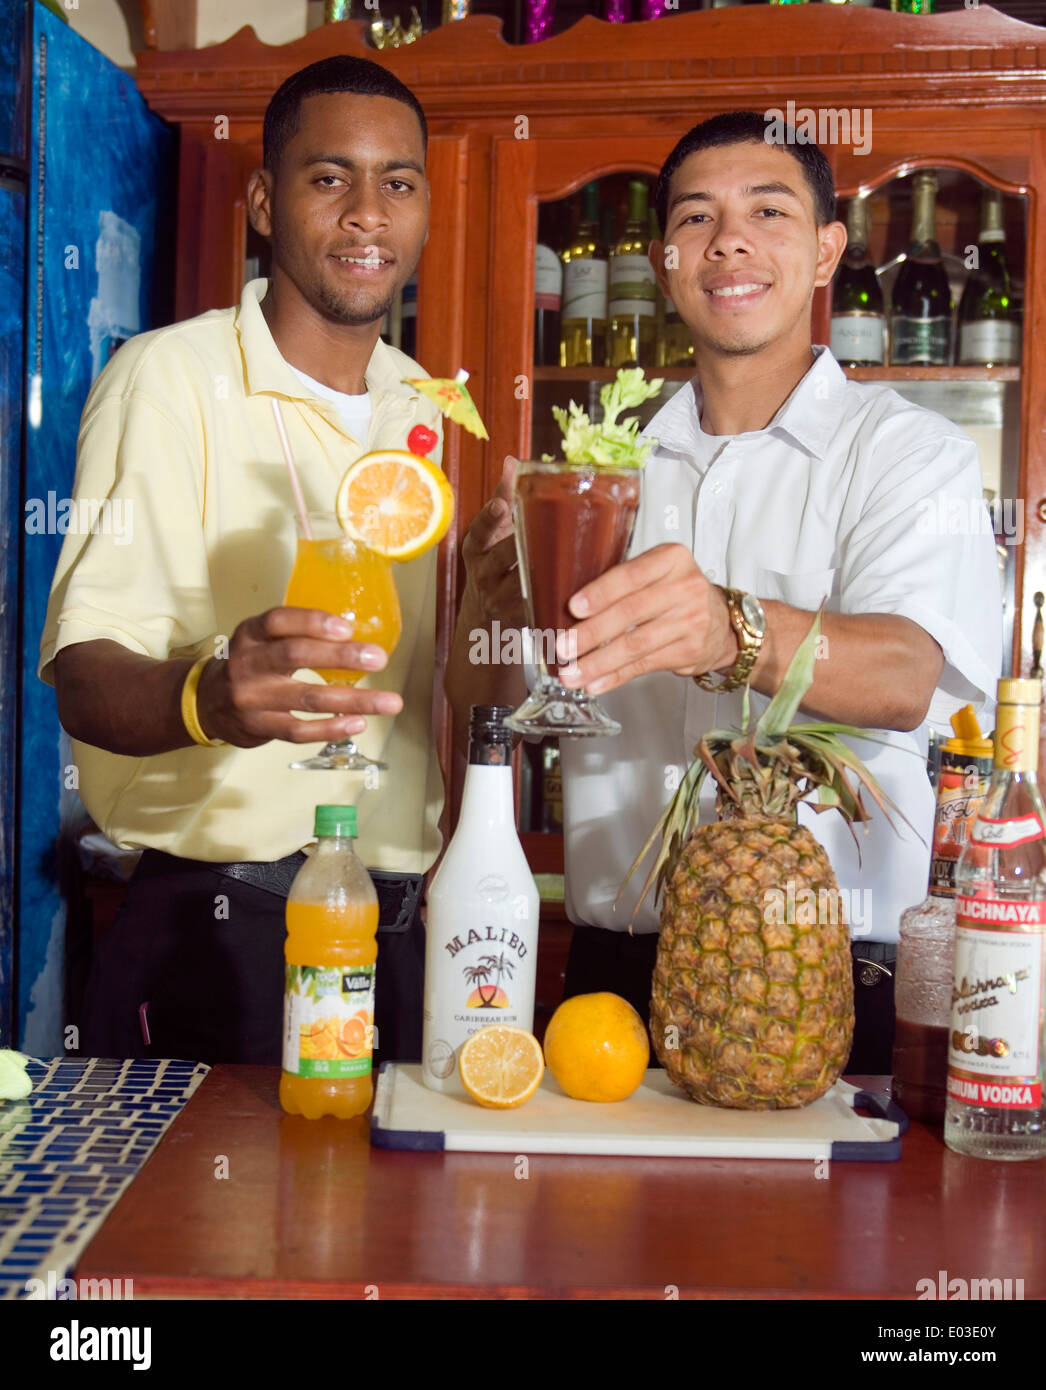 Bartenders Stock Photos & Bartenders Stock Images - Alamy